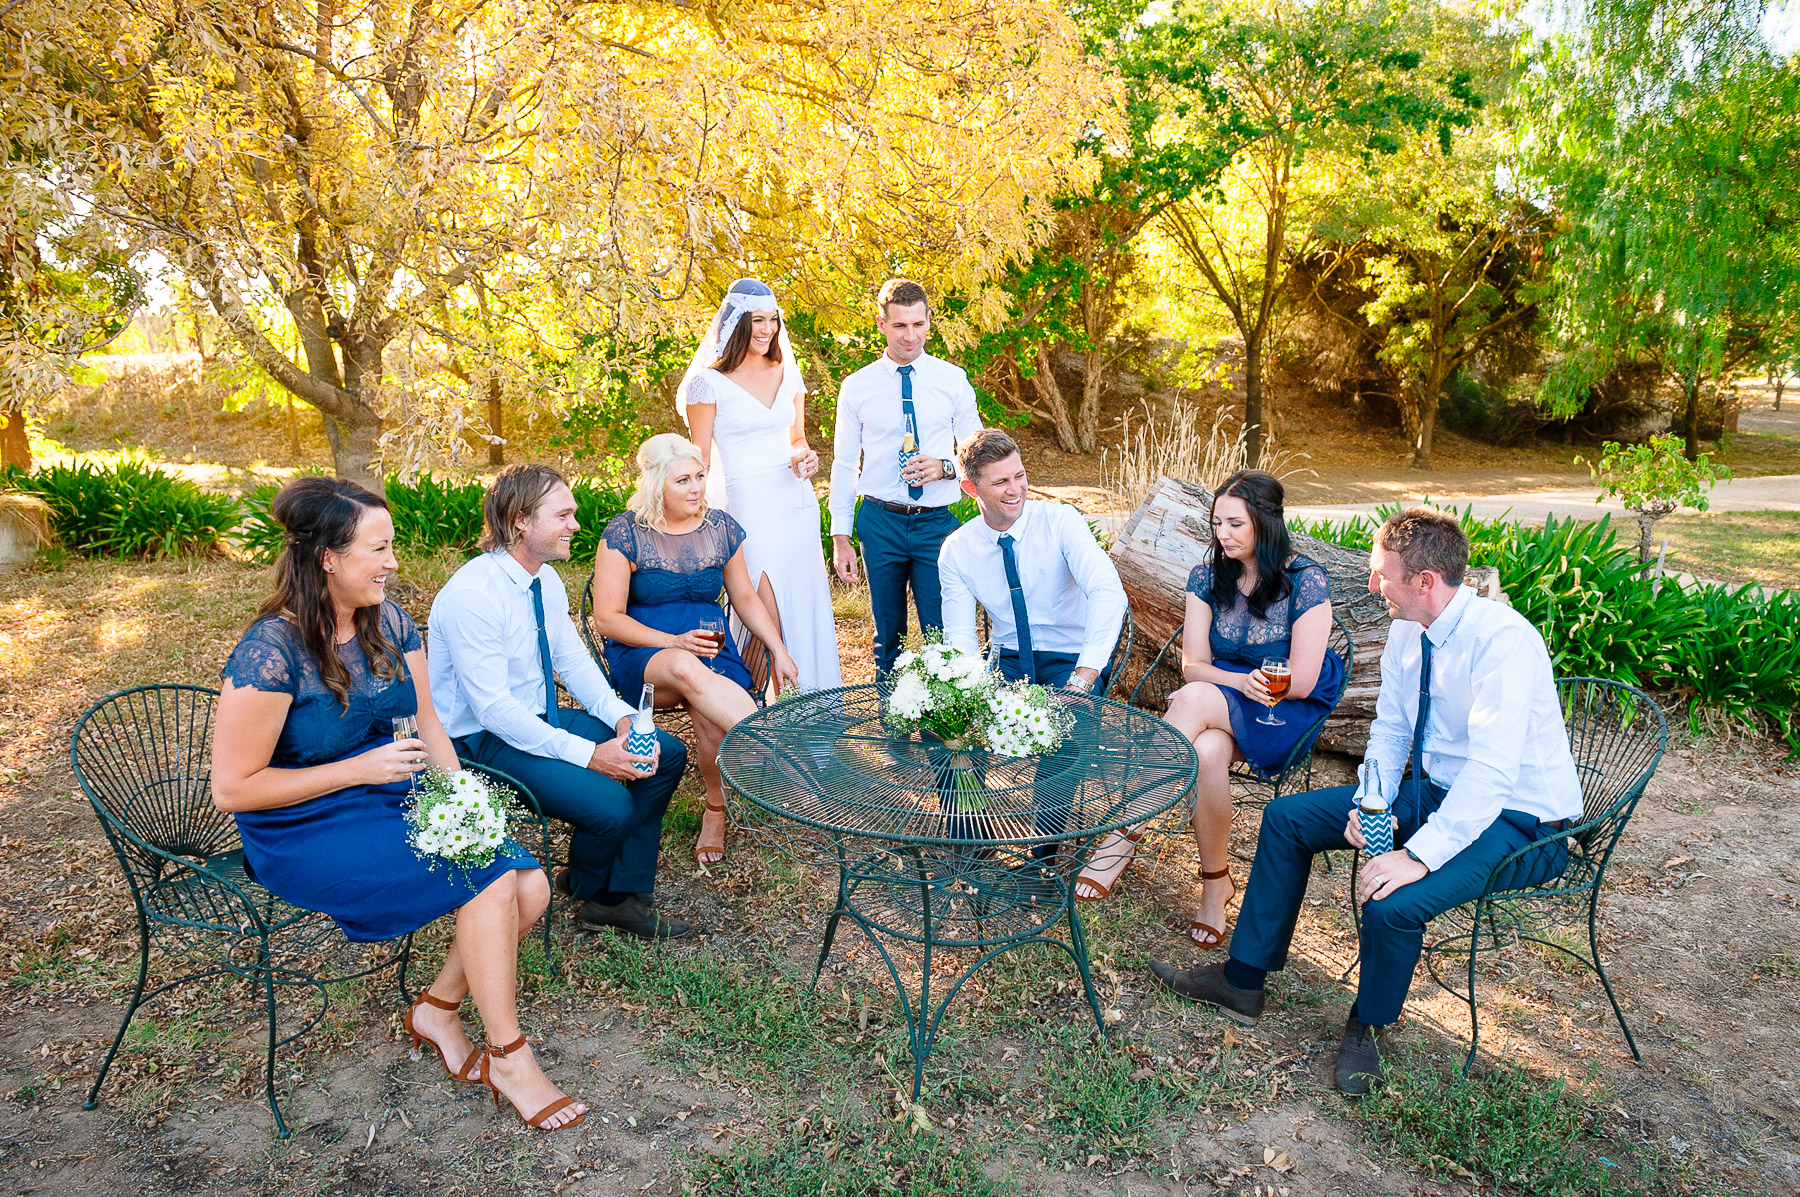 Justin_and_Jim_Best_Of_Wedding_Photography-74.jpg